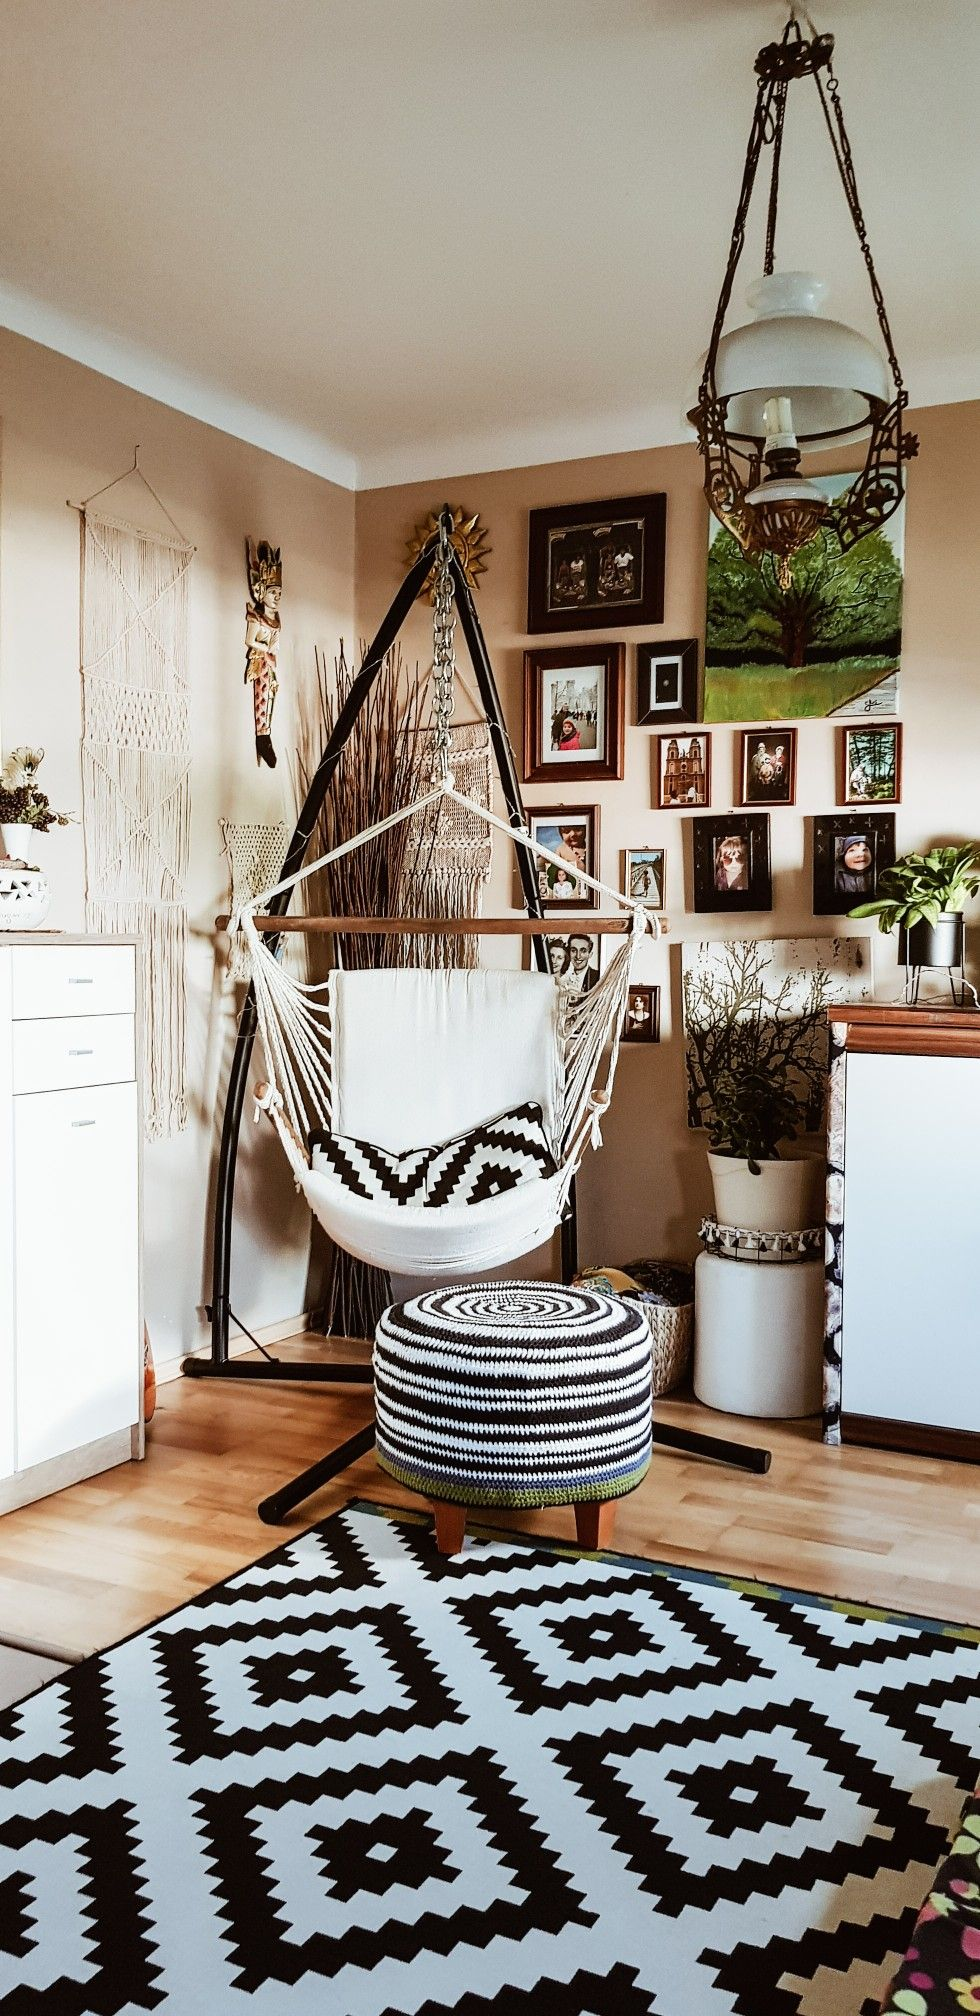 Hängesessel Wohnzimmer Hängesessel Wohnzimmer Home Sweet Home Pinterest Sweet Home